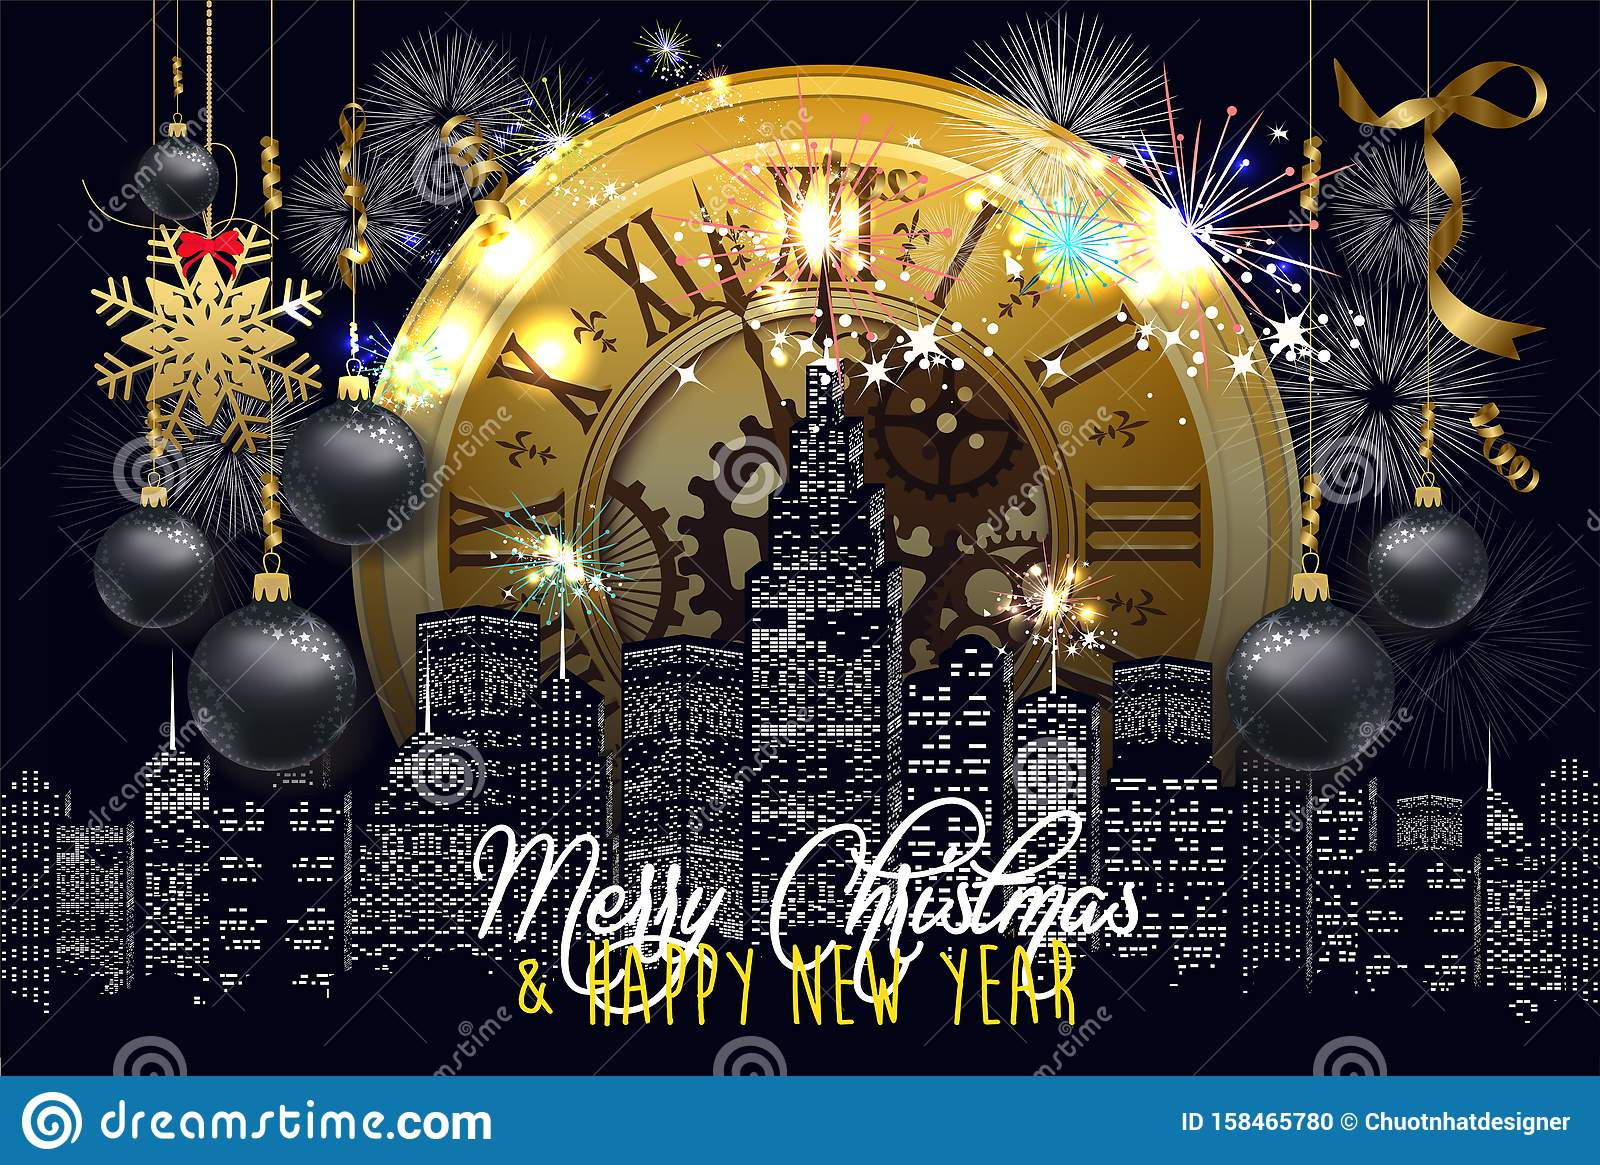 happy new year 2020 background with christmas clock gold and firework stock vector illustration of year background 158465780 https www dreamstime com happy new year background christmas clock gold firework happy new year background christmas clock gold firework image158465780